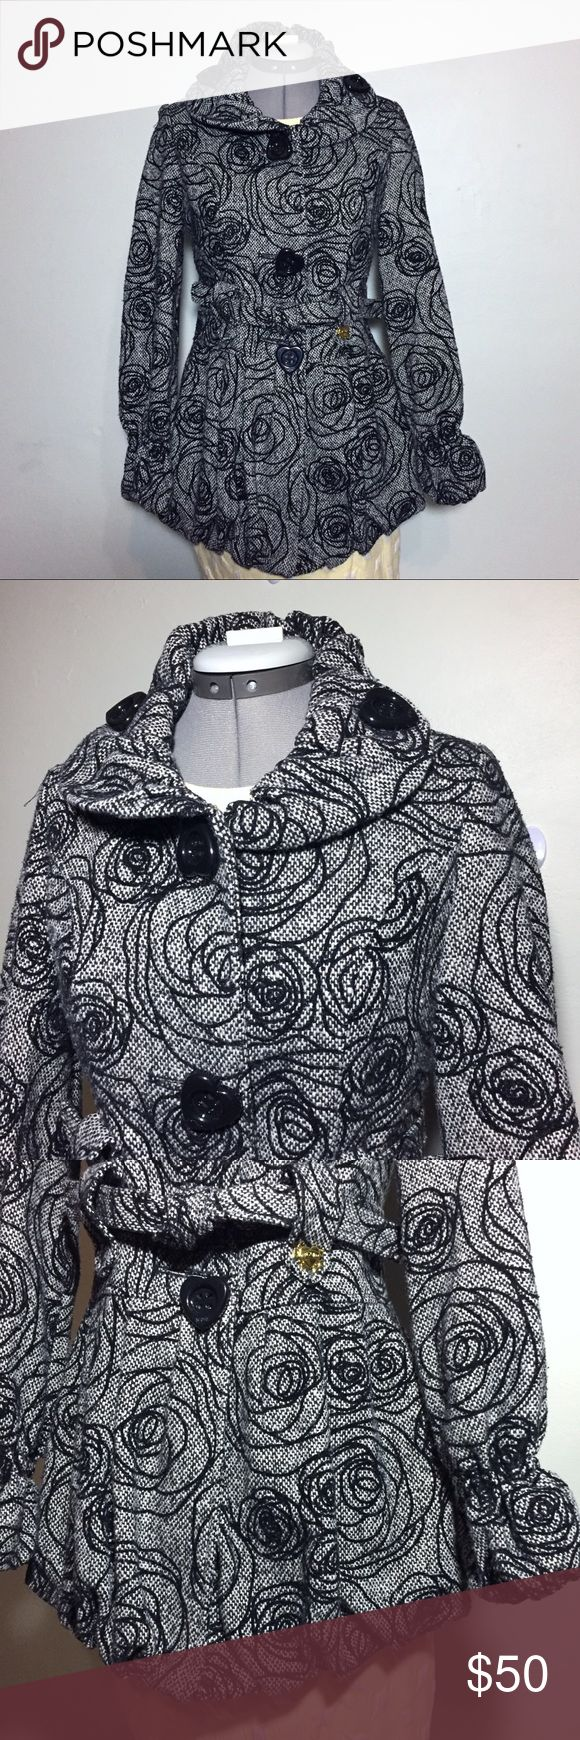 """Betsey Johnson Black Embroidered Rose Tweed Coat 2 Amazing Betsey Johnson Black Rose Embroidered Tweed Coat. Has a ballooned hem and Wrists, with belted waist and heart buttons. Absolutely gorgeous and flattering. Size 2 measures flat approximately: 15"""" across shoulders, 17"""" across chest, 15"""" across waist, 28"""" long, 24"""" sleeve, skirted wide bottom. 35% acrylic, 25% wool, 25% poly, 15% nylon. Fully lined 100% poly. Awesome pink lining. Dry Clean. 1230/10/011618 winter warm outerwear fun…"""